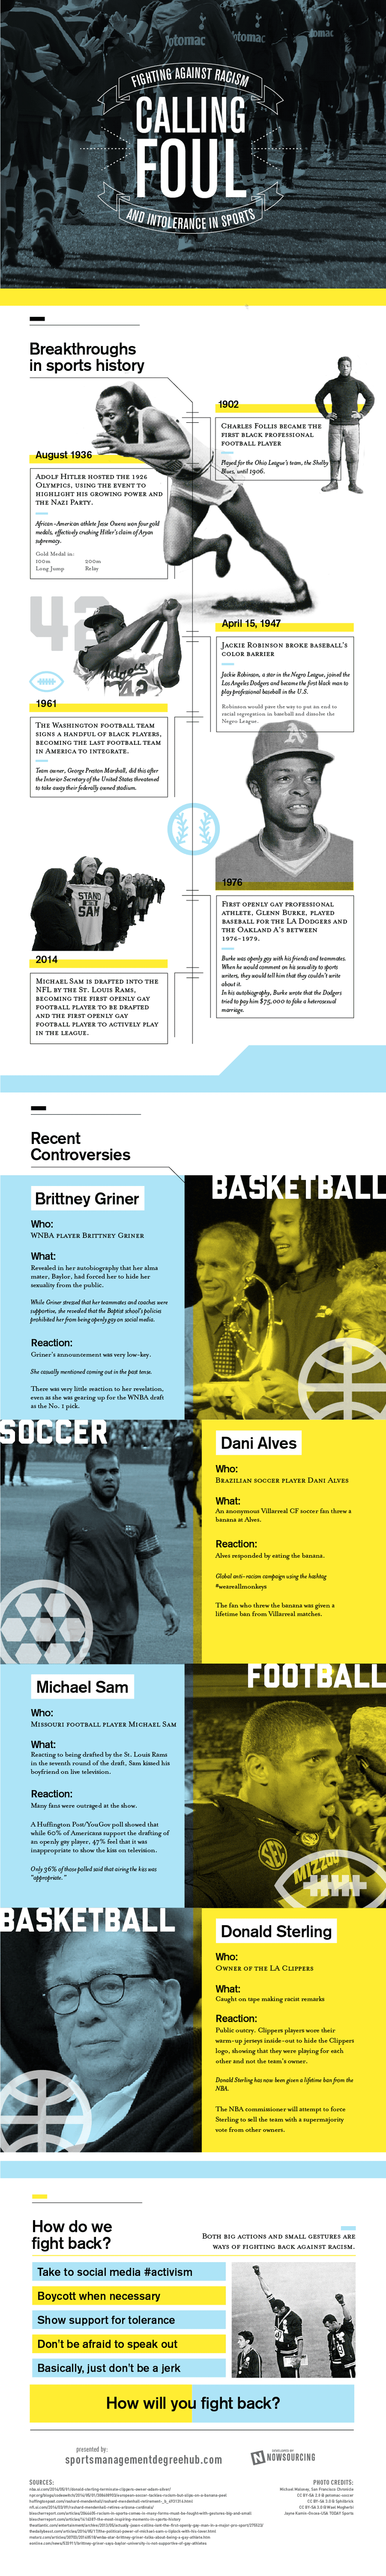 racism-in-sports infographic design